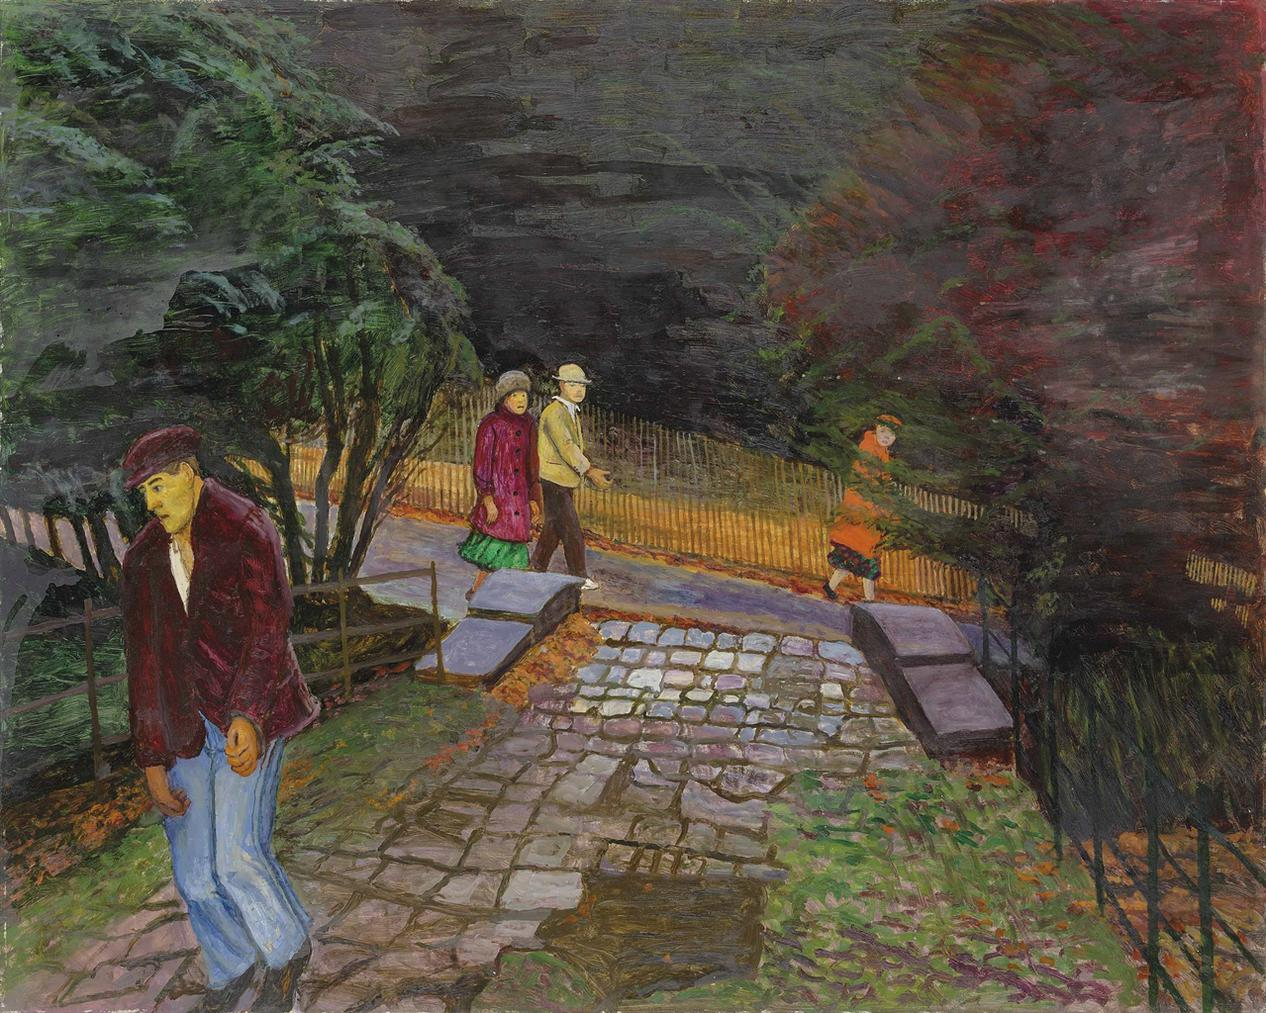 Carel Weight-Stress-1988